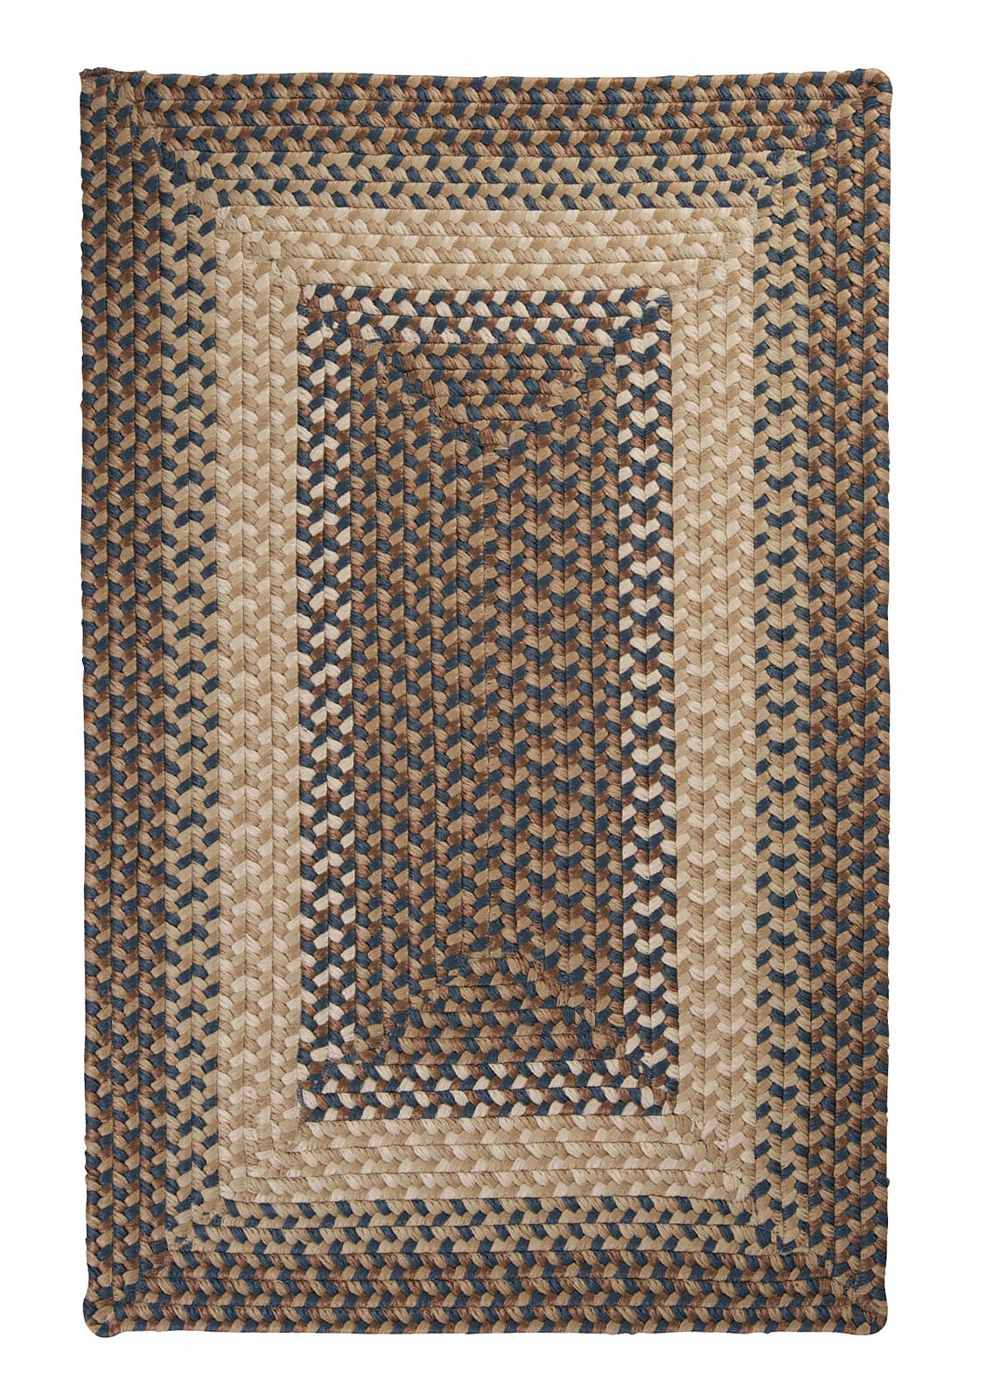 Super Area Rugs 8ft. x 11ft. Indoor/Outdoor Reversible Braided Rug Stone Blue Color (8x11) at Sears.com